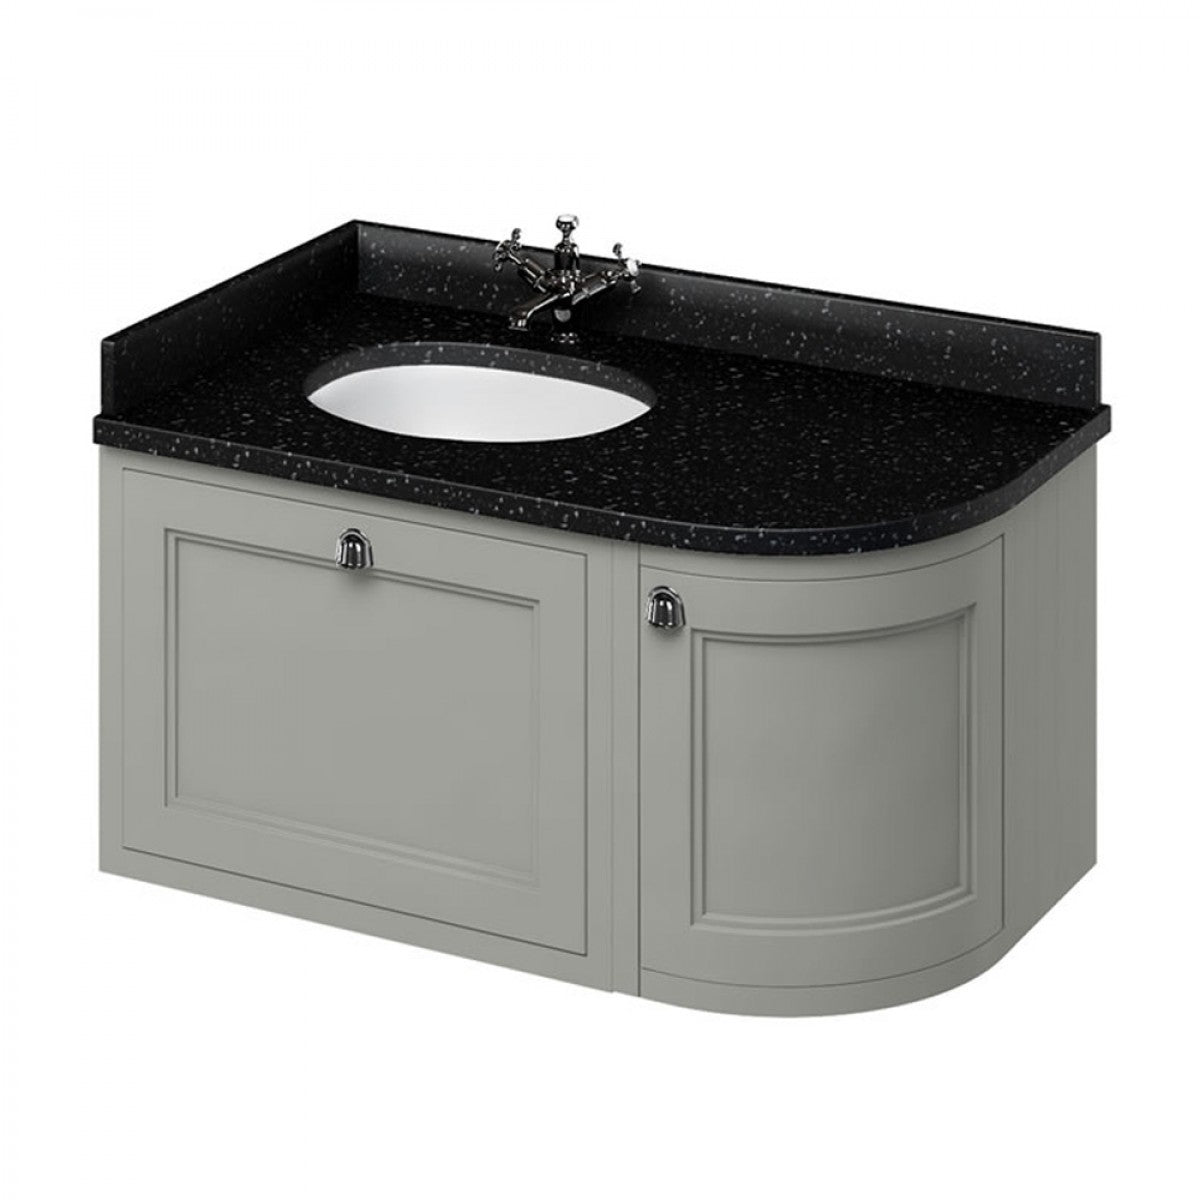 BURLINGTON 100 LEFT HAND CORNER WALL HUNG VANITY UNIT WITH MINERVA WORKTOP & BASIN